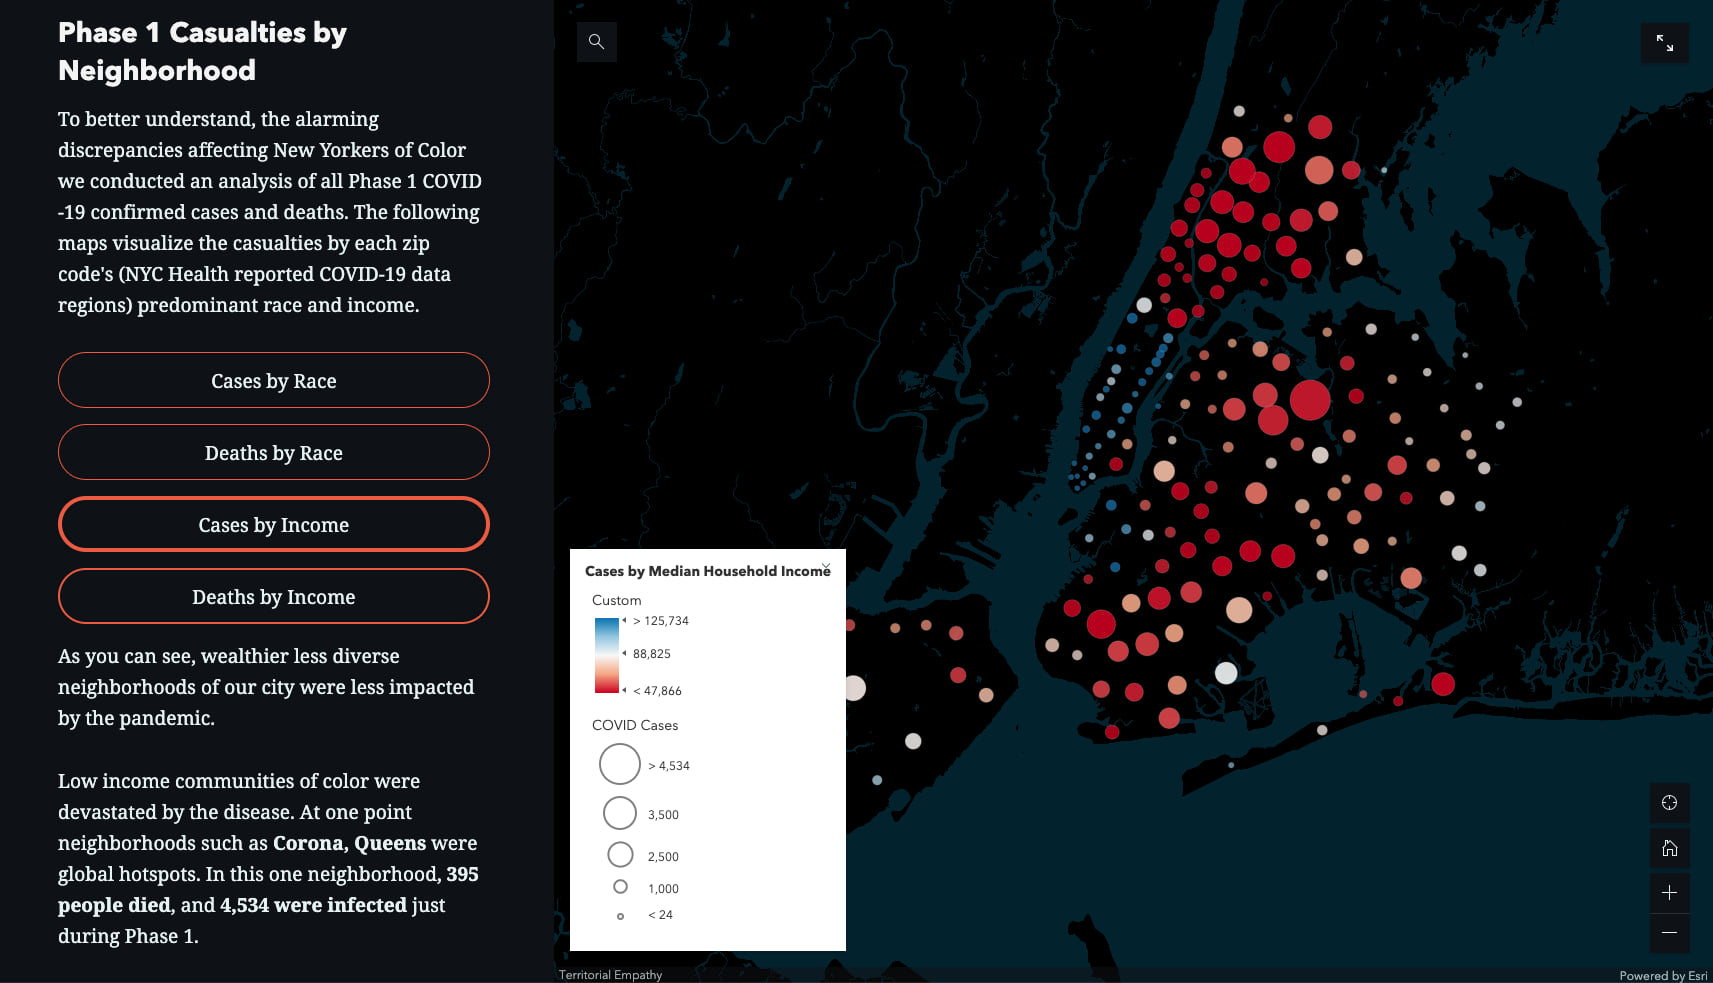 detailed map of NYC showing number of covd-19 cases